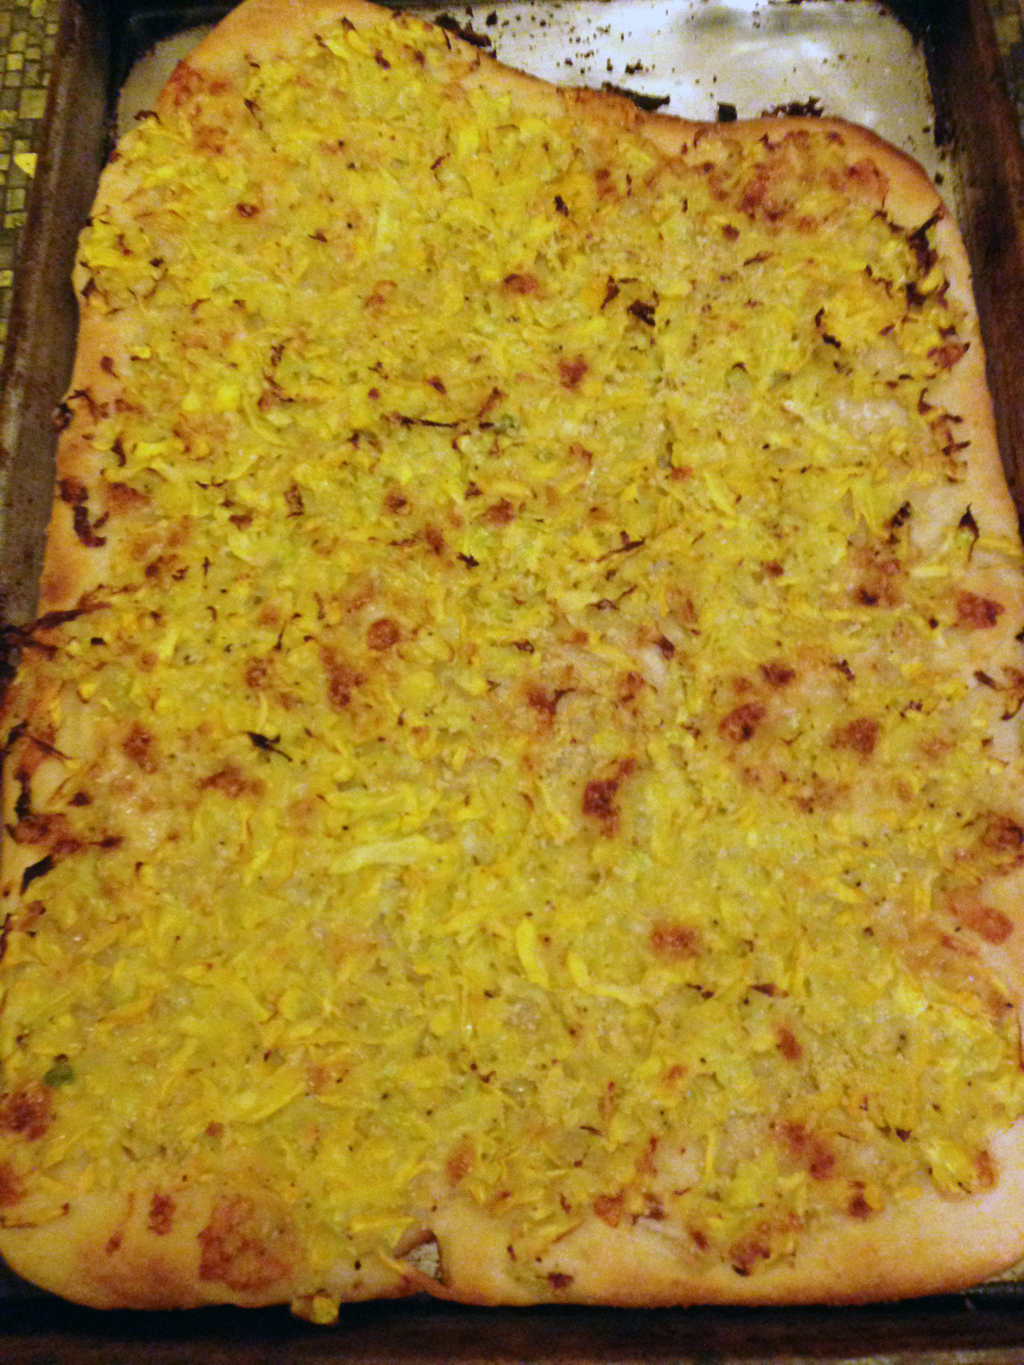 Fluorescent yellow squash pizza.